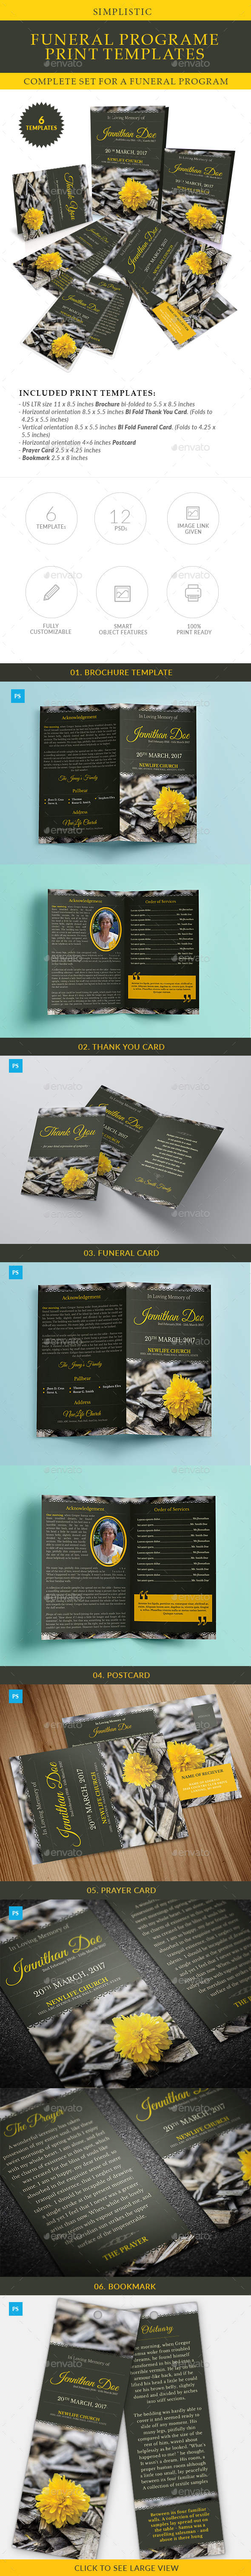 GraphicRiver Simplistic Funeral Program Print Templates Combo Set 20649991